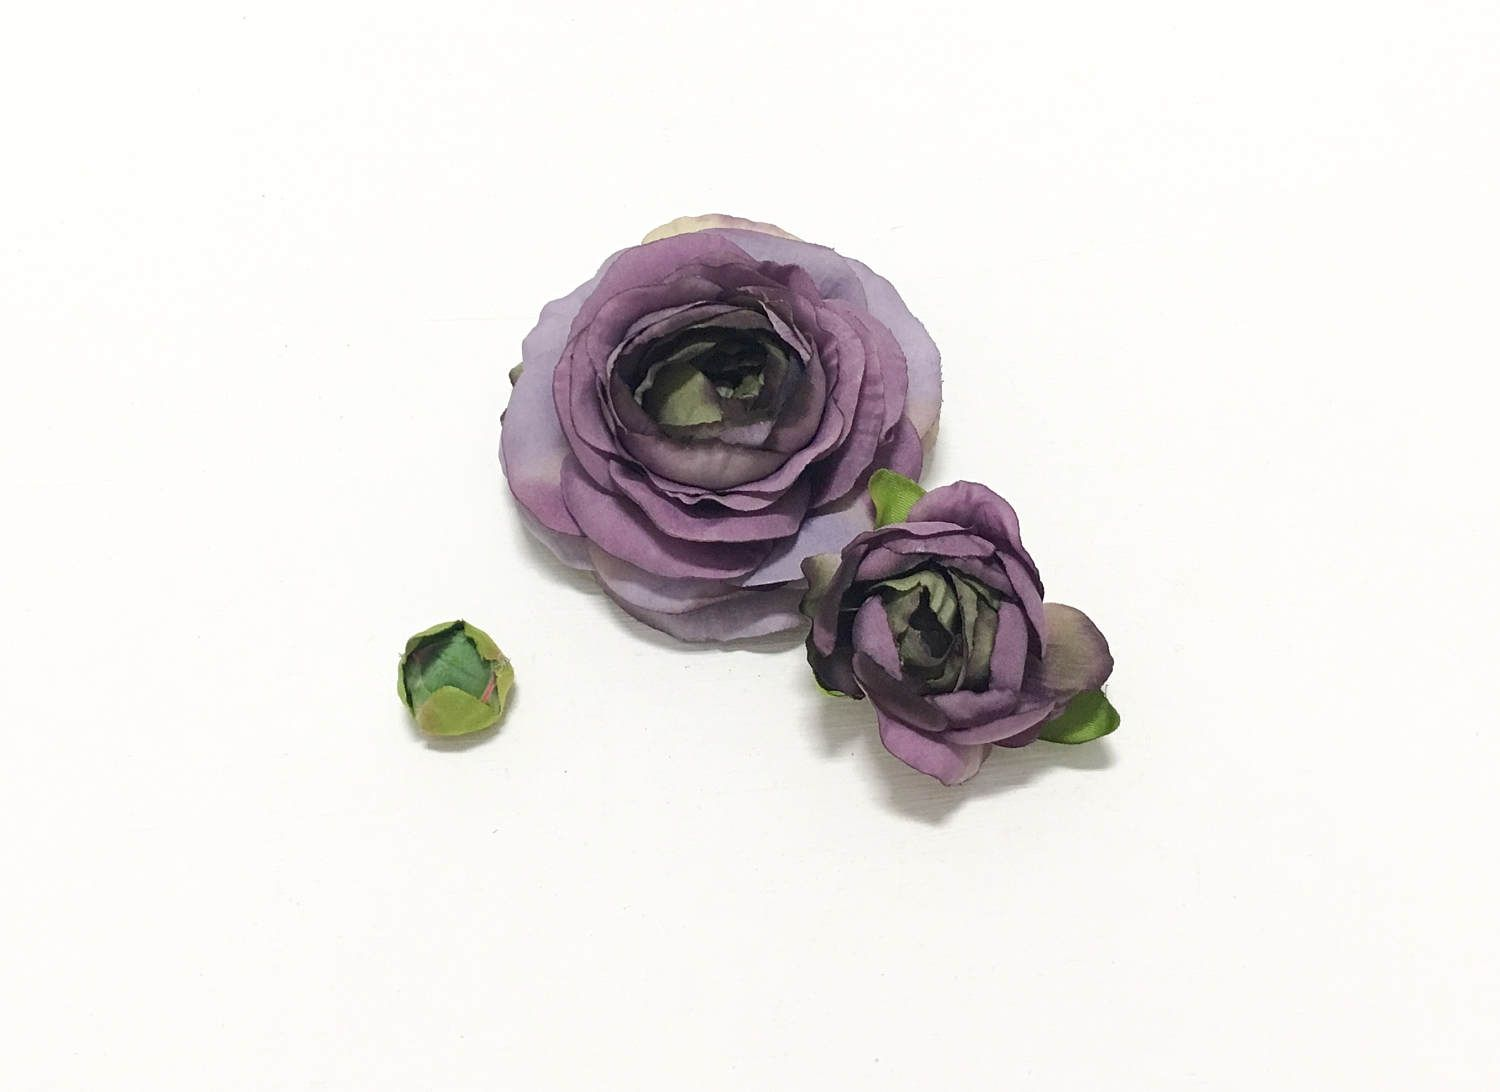 Antique purple ranunculus bud to bloom wedding flowers silk antique purple ranunculus bud to bloom wedding flowers silk flowers artificial flowers mightylinksfo Gallery